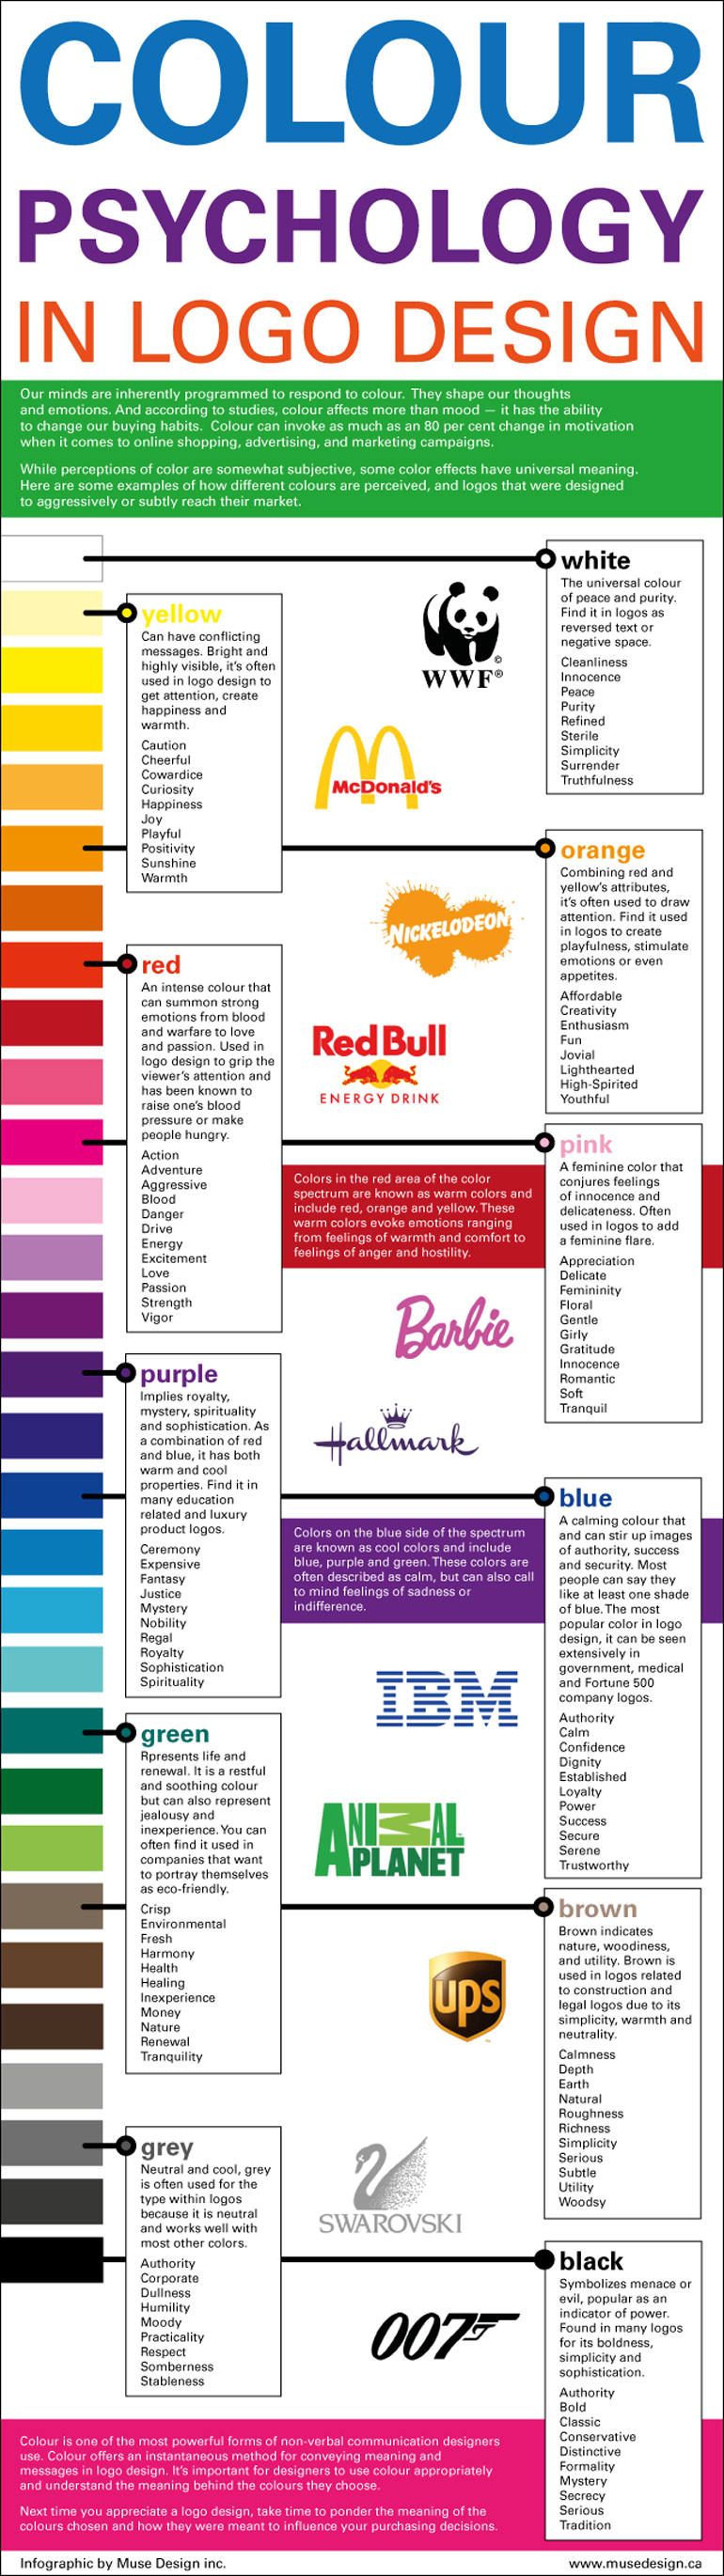 Glamorous Colors And Moods Psychology With Colors And Moods Pdf Shop Style Pinterest Psychology Pdf And Fiery Red